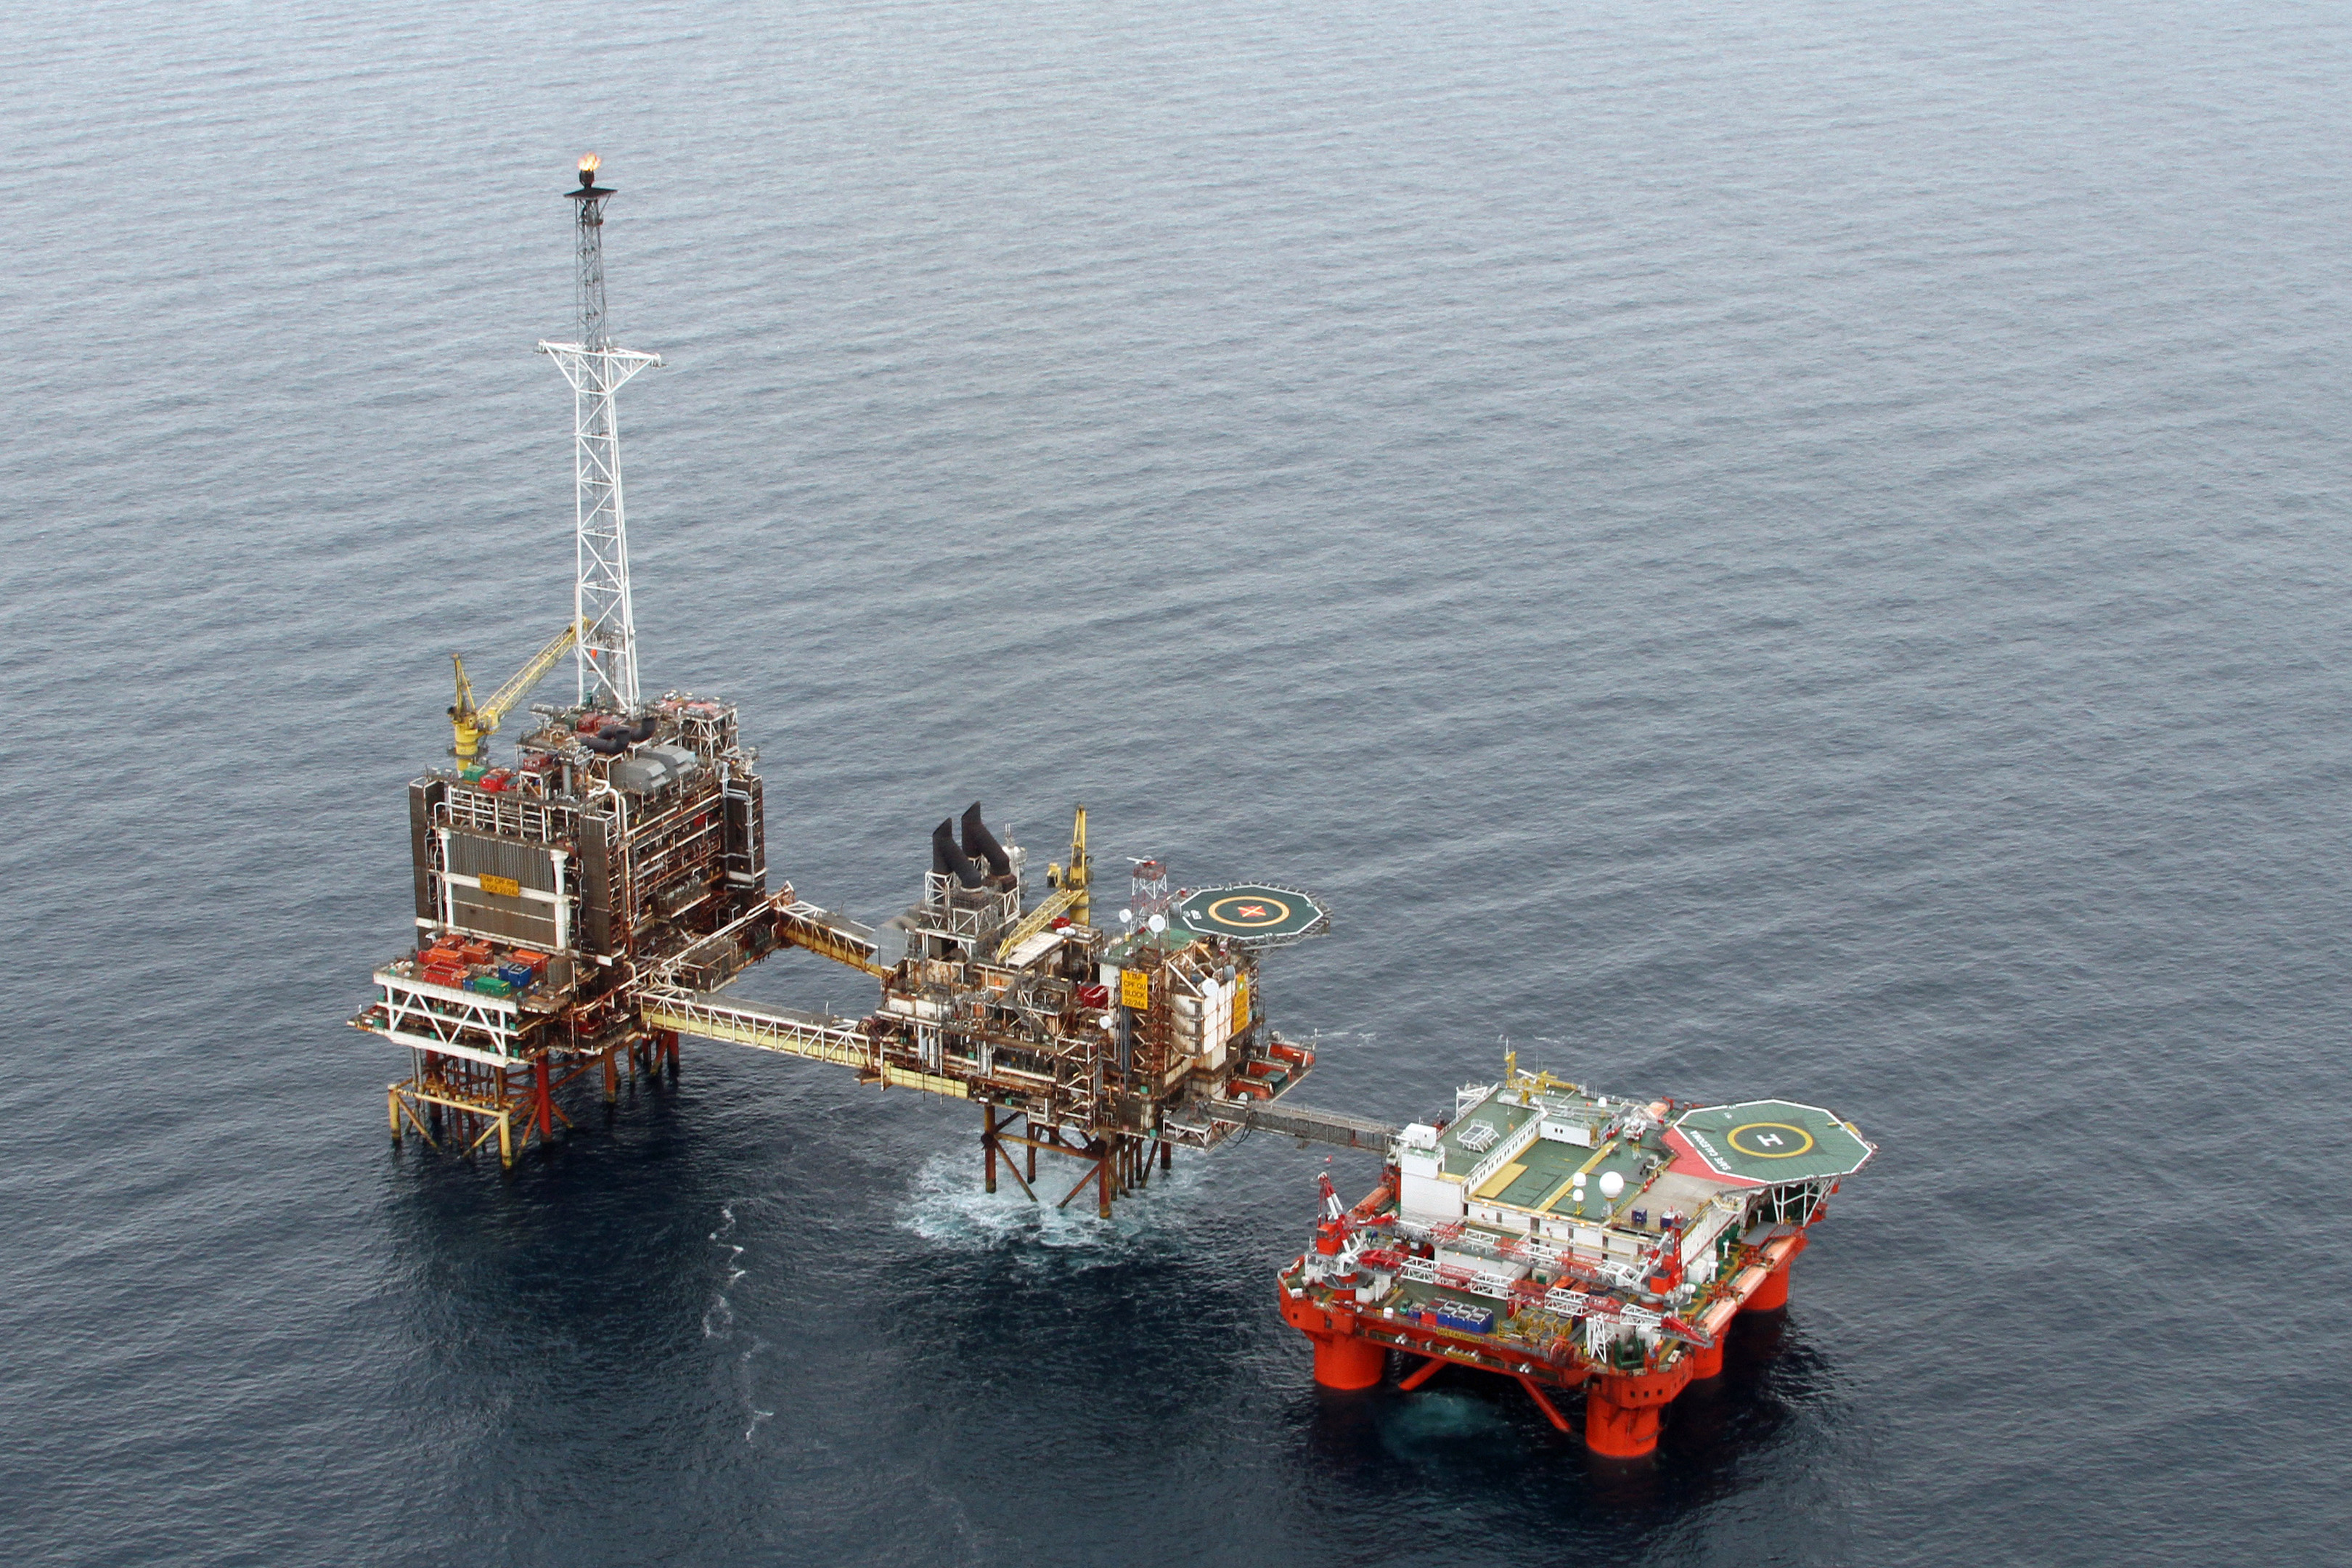 The Safe Caledonia (right) pictured with BP's ETAP platform